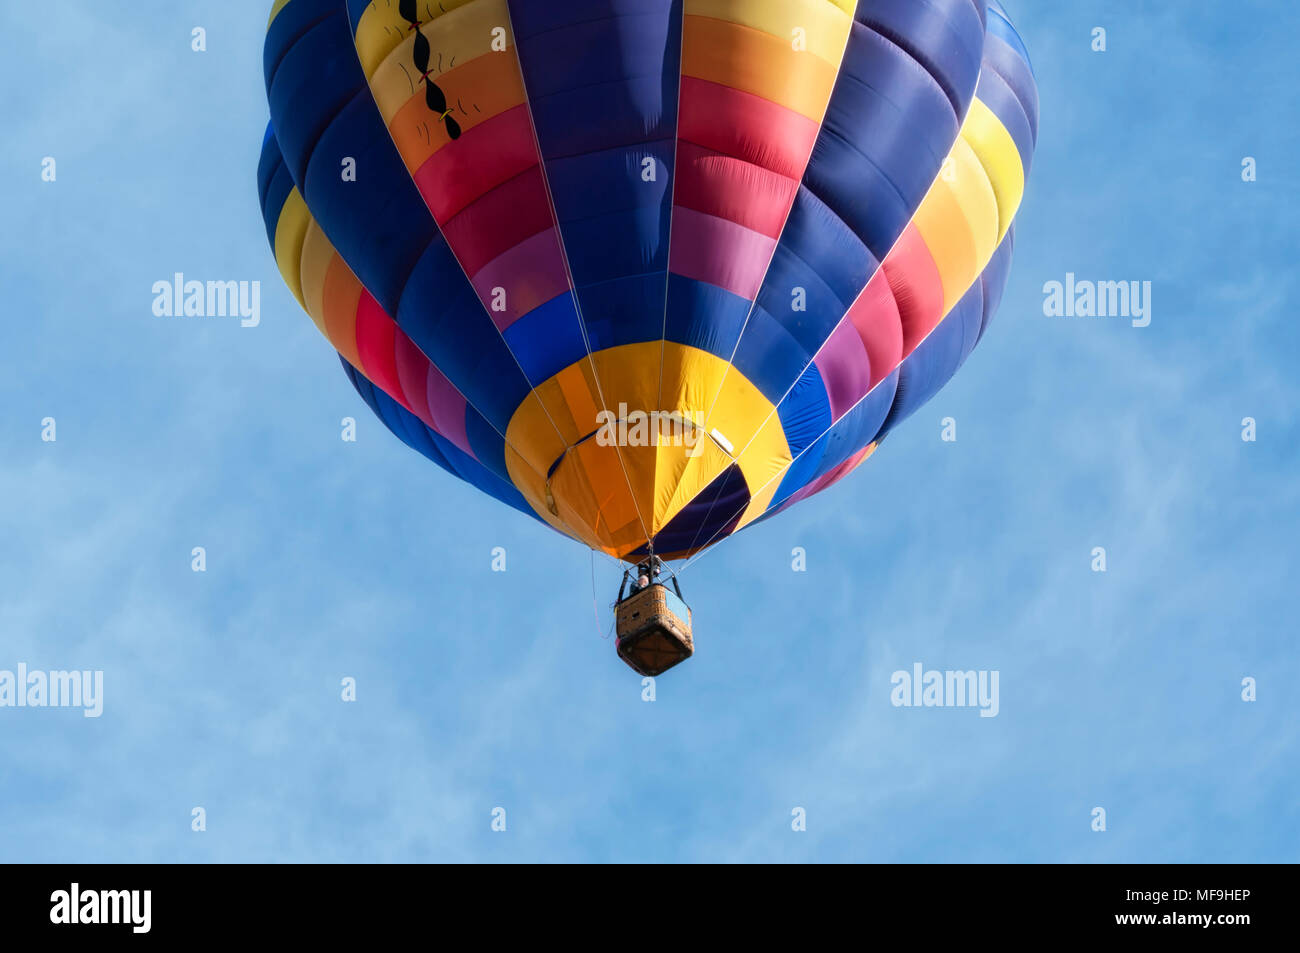 Close-up view from a low angle of a colorful hot-air balloon flying in the clear Italian sky above Udine in daylight. Concept for freedom & adventure Stock Photo